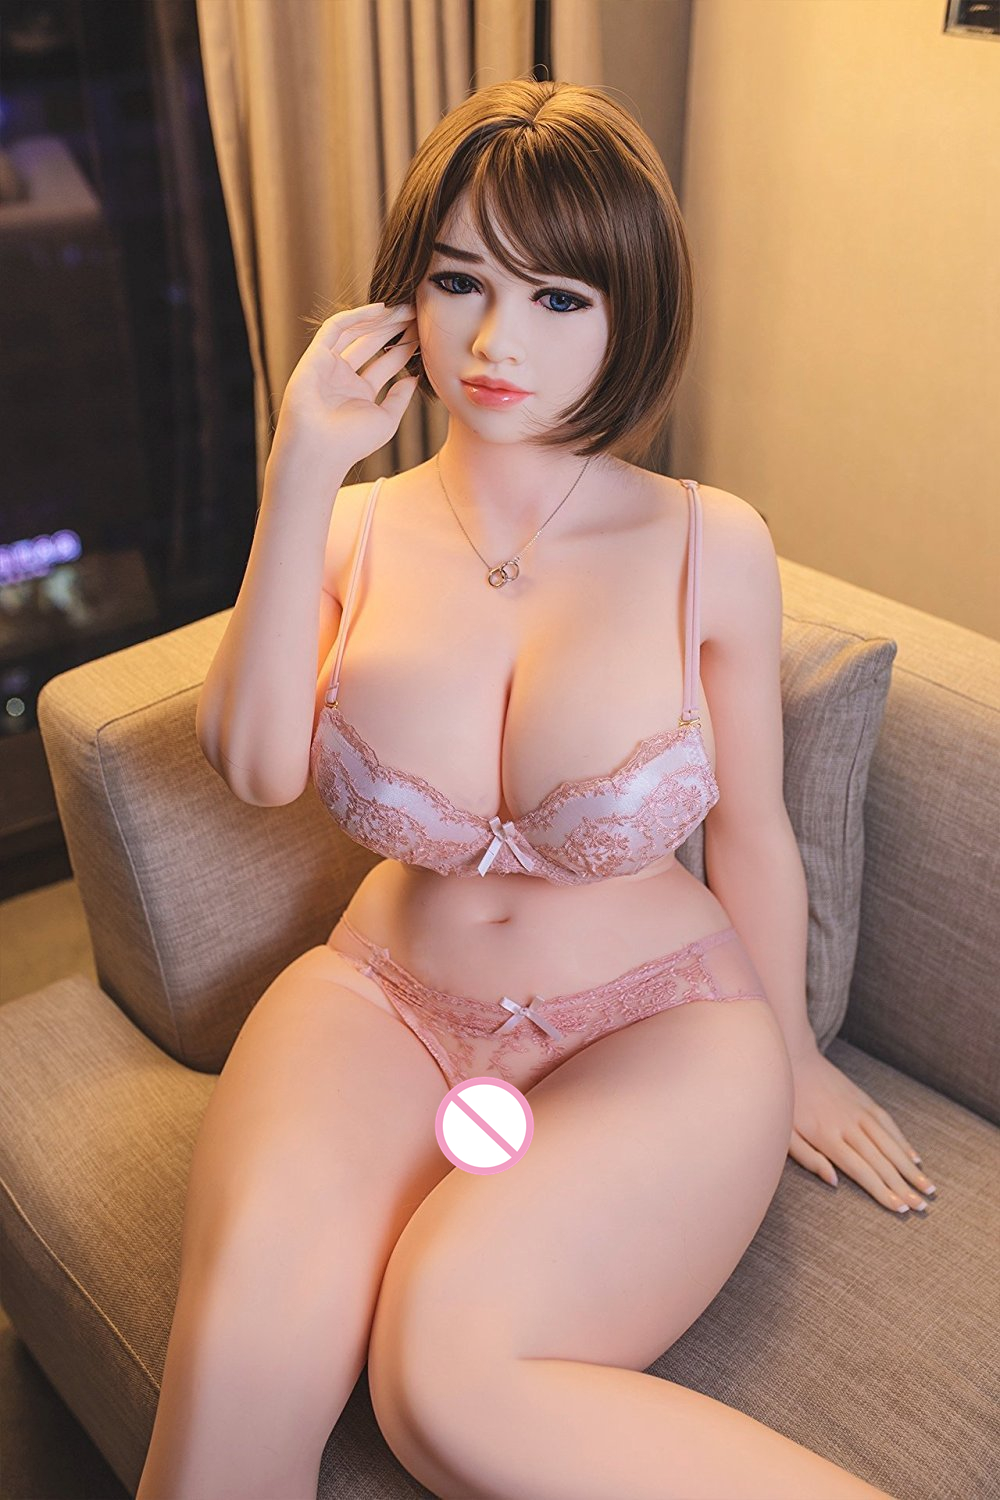 <font><b>162cm</b></font> Big Ass <font><b>Sex</b></font> <font><b>Doll</b></font> Full Body Fat Silicone Adult Real <font><b>Doll</b></font> Realistic Big Boobs Oral <font><b>Sex</b></font> love Toy Masturbator Drop shiping image